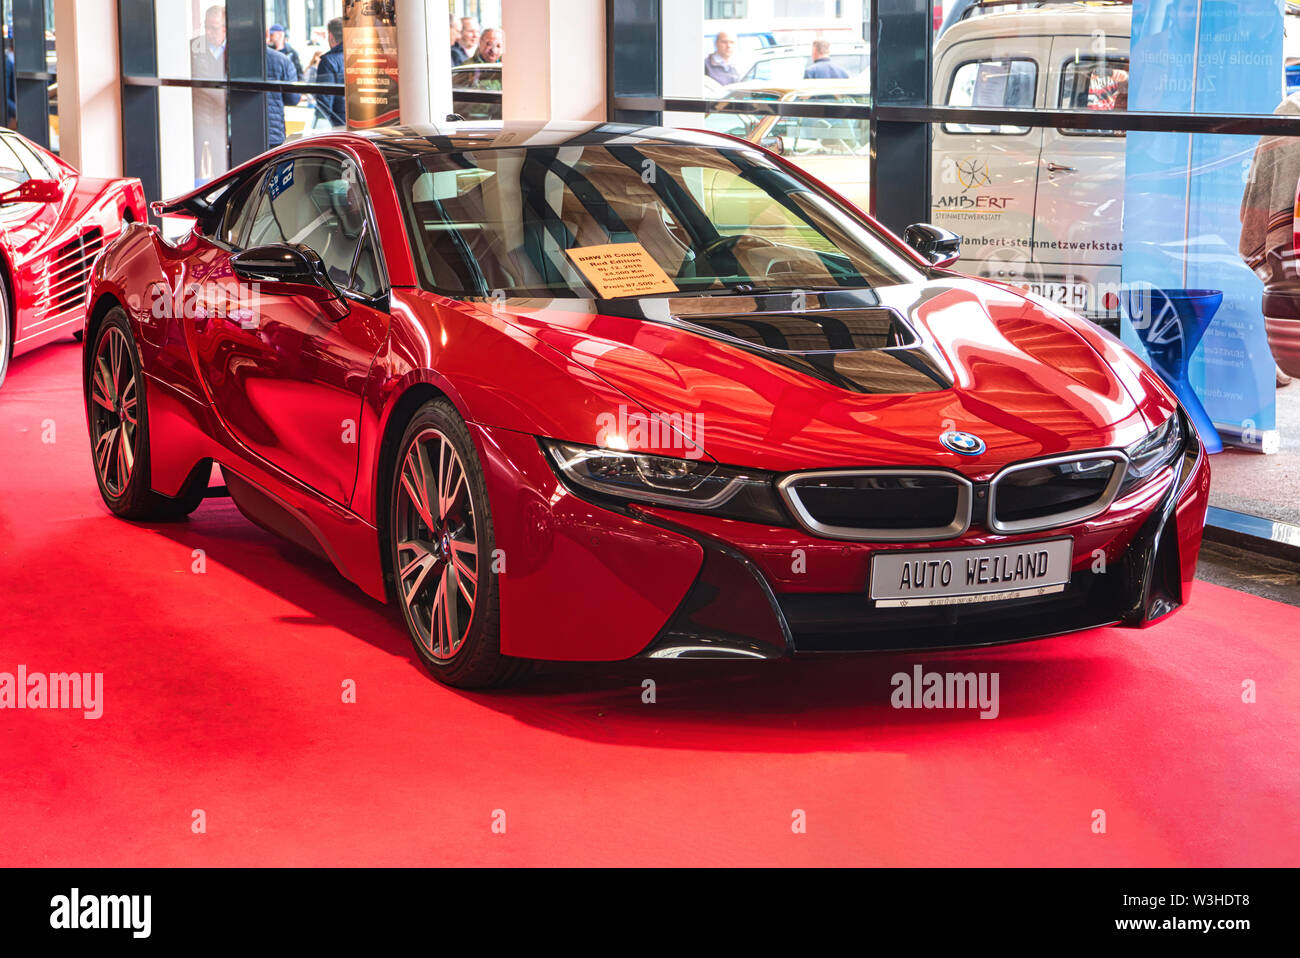 Page 3 Red Bmw High Resolution Stock Photography And Images Alamy